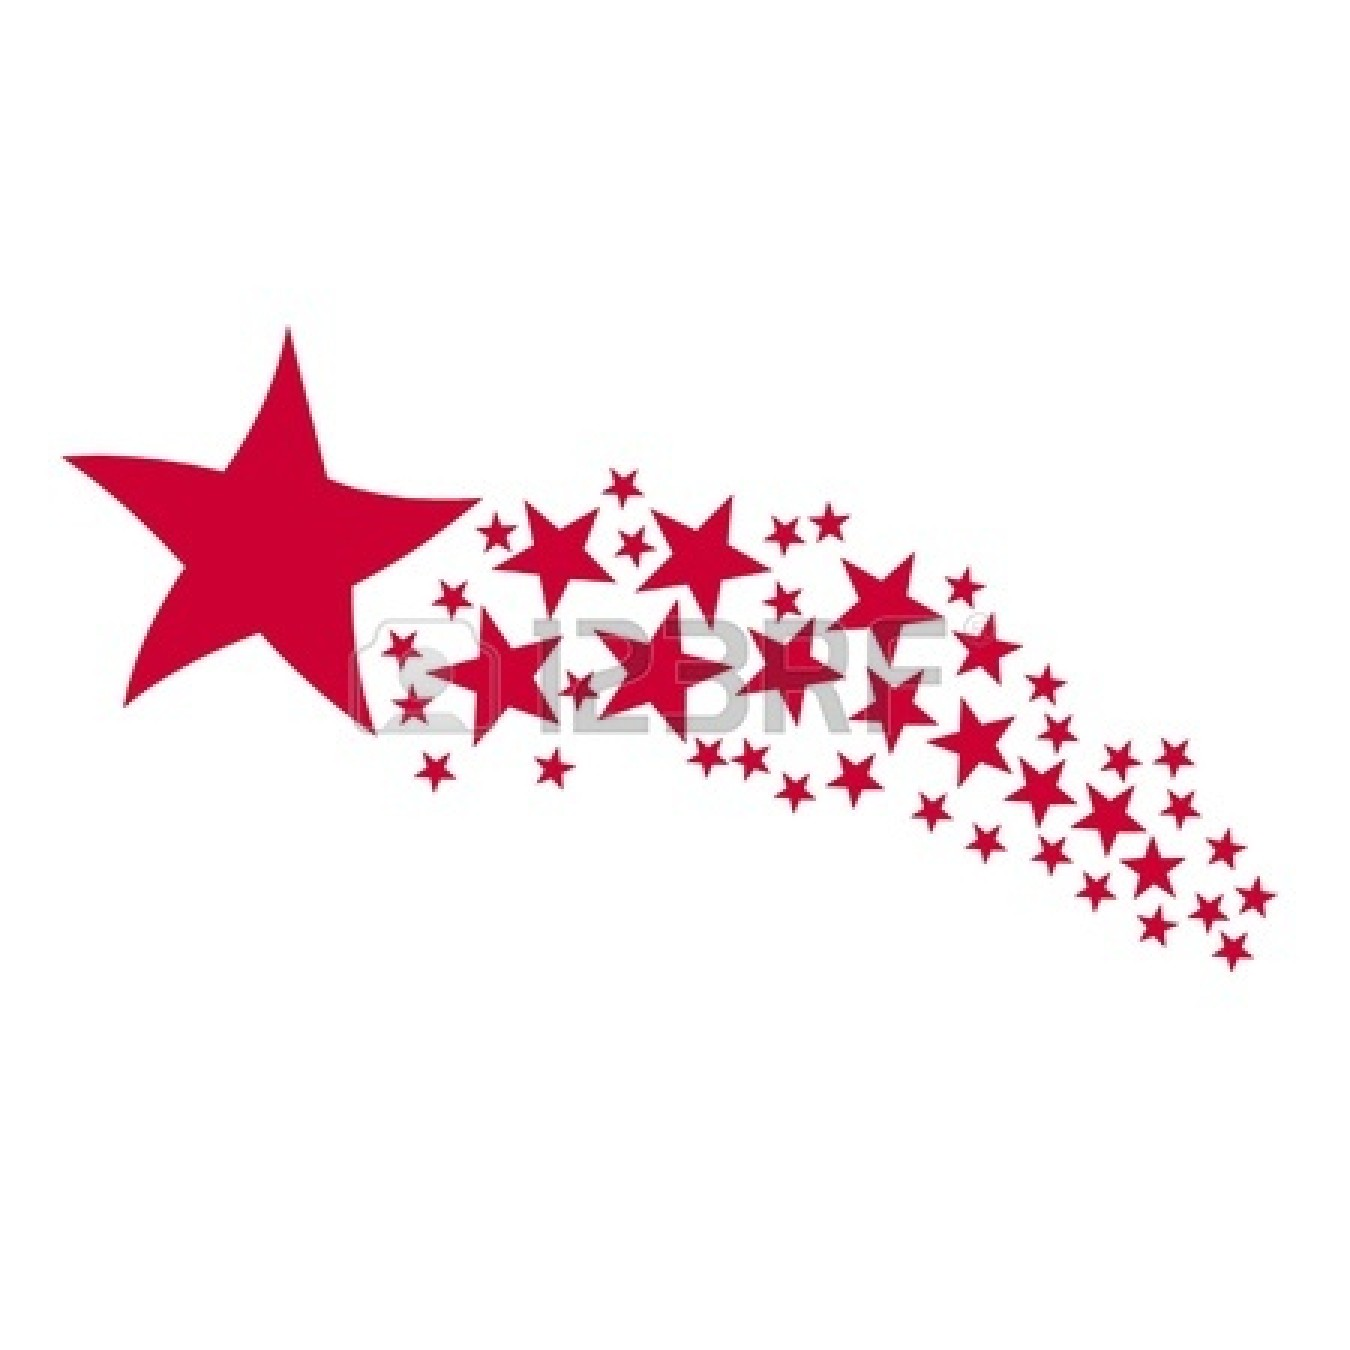 Shooting star clipart free download 2